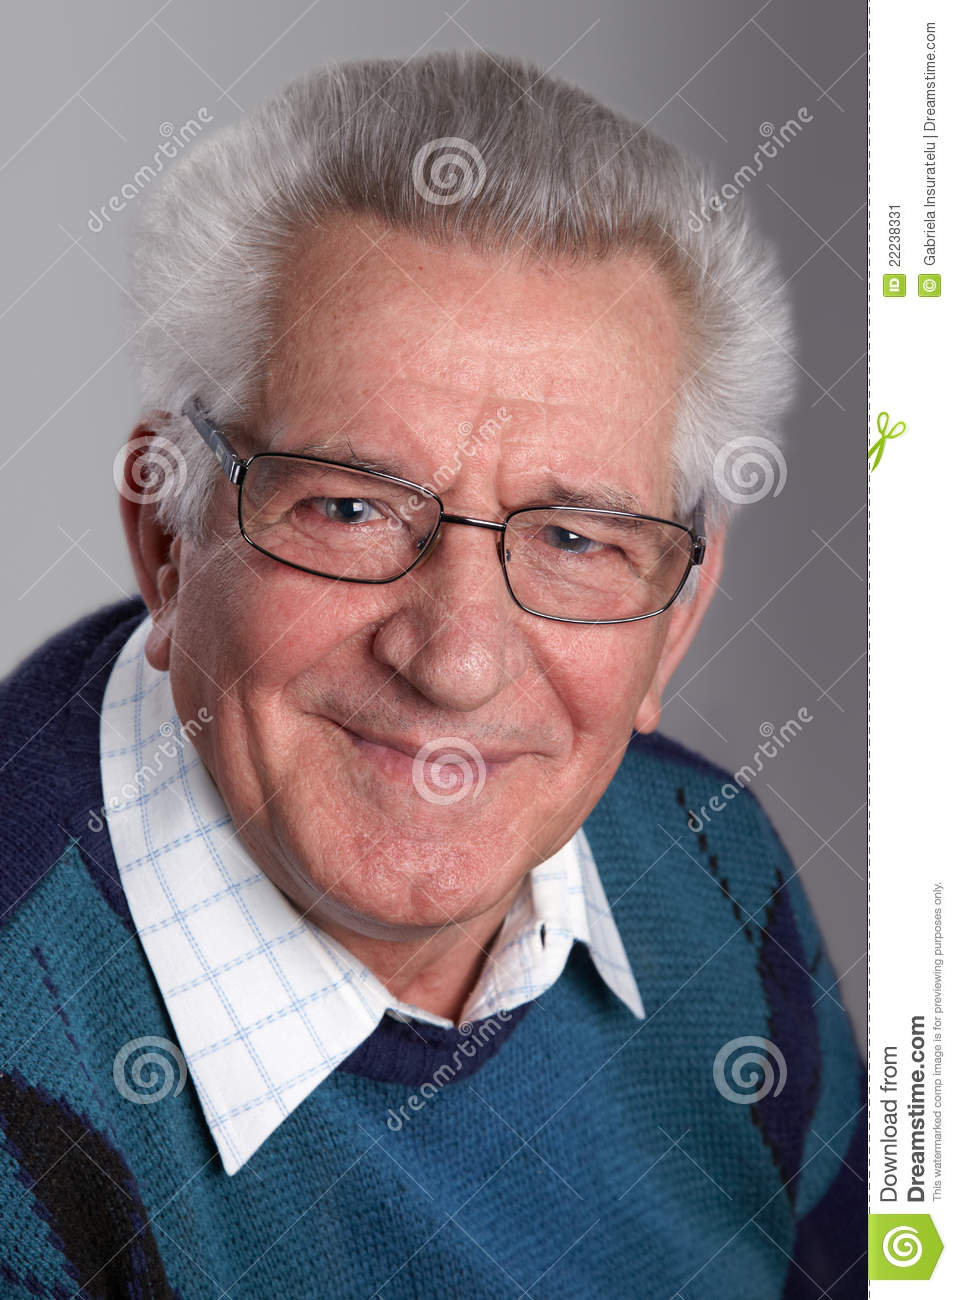 Portrait Of A Grandfather Stock Image - Image: 22238331